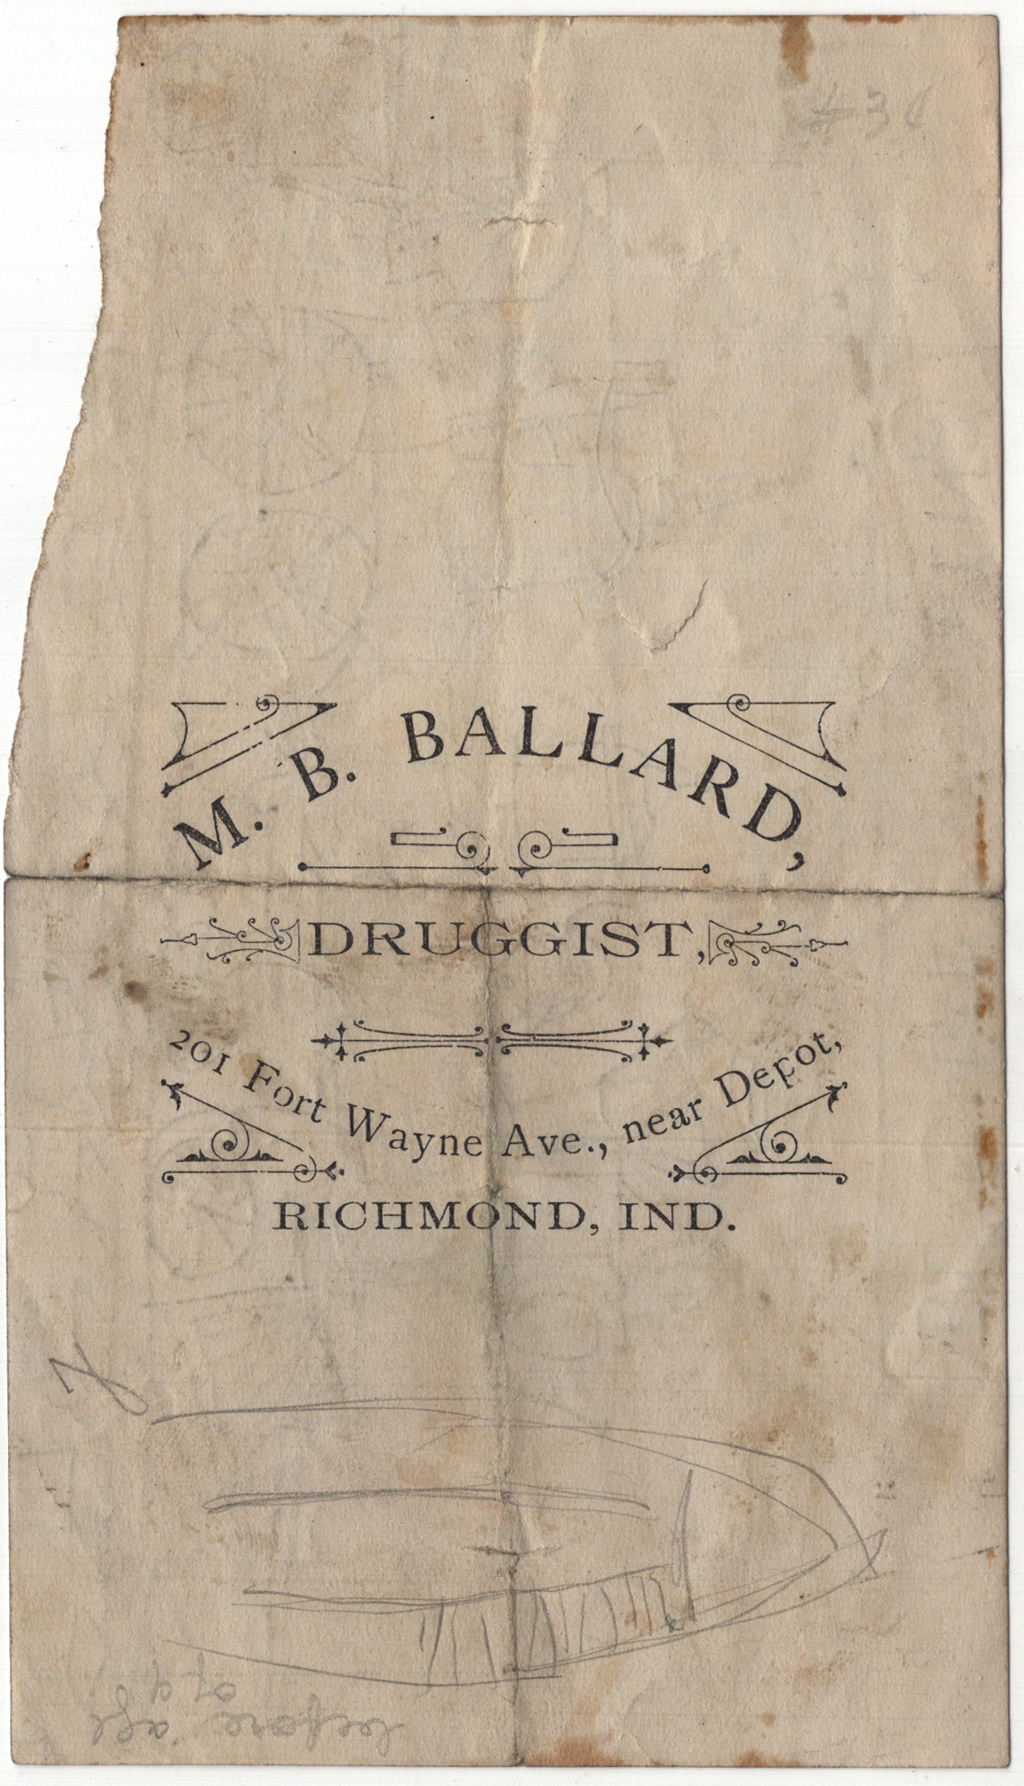 M.B. Ballard, Druggist (Richmond, Indiana) notepaper. Courtesy Special Collections, Boston Public Library.